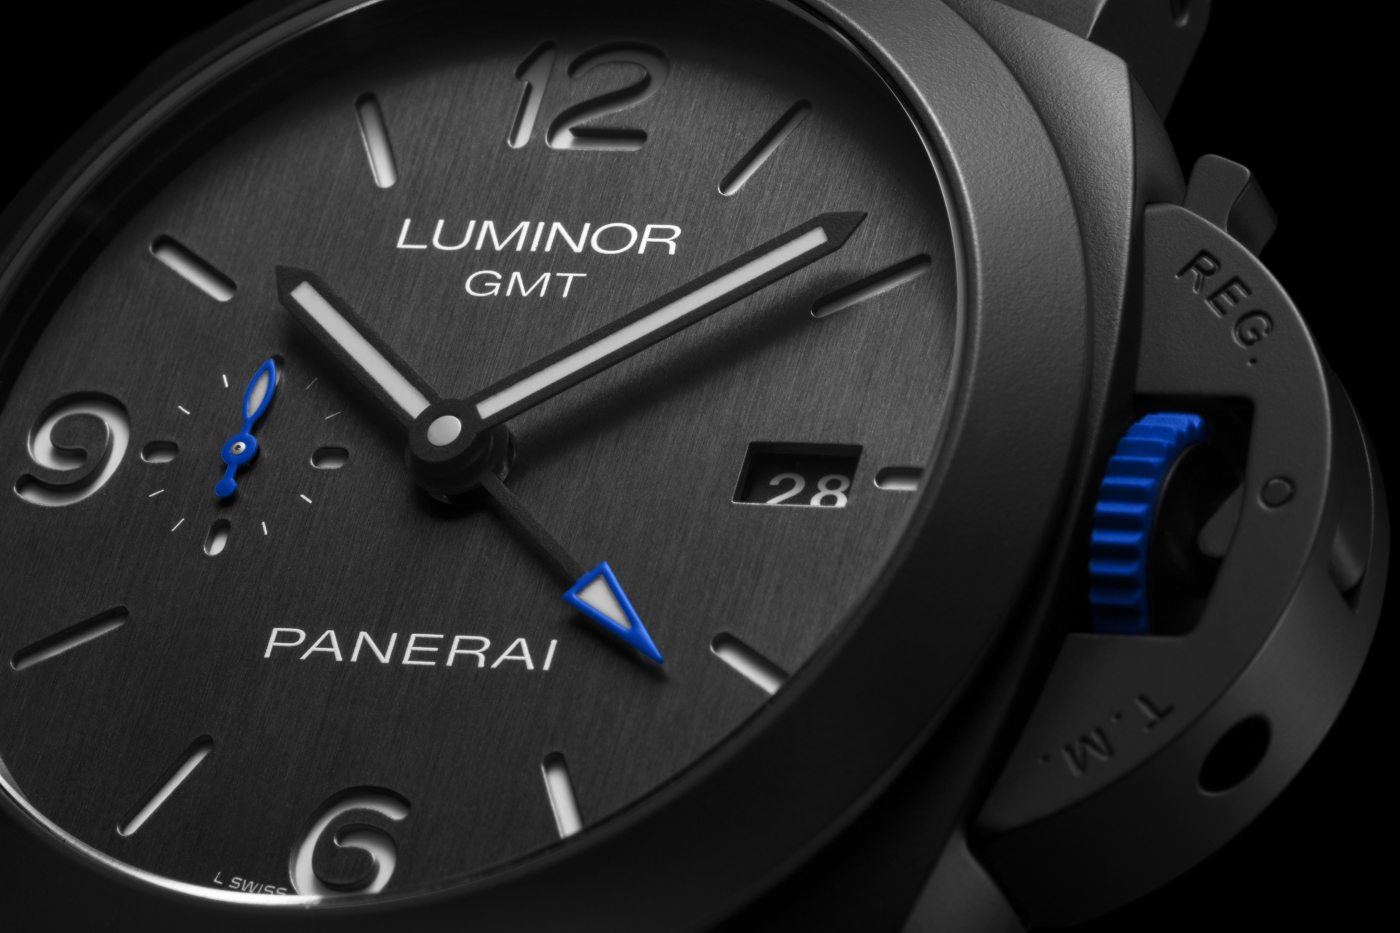 Panerai_luminor_gmt_Bucherer_blue_2_-_Europa_Star_watch_magazine_2020